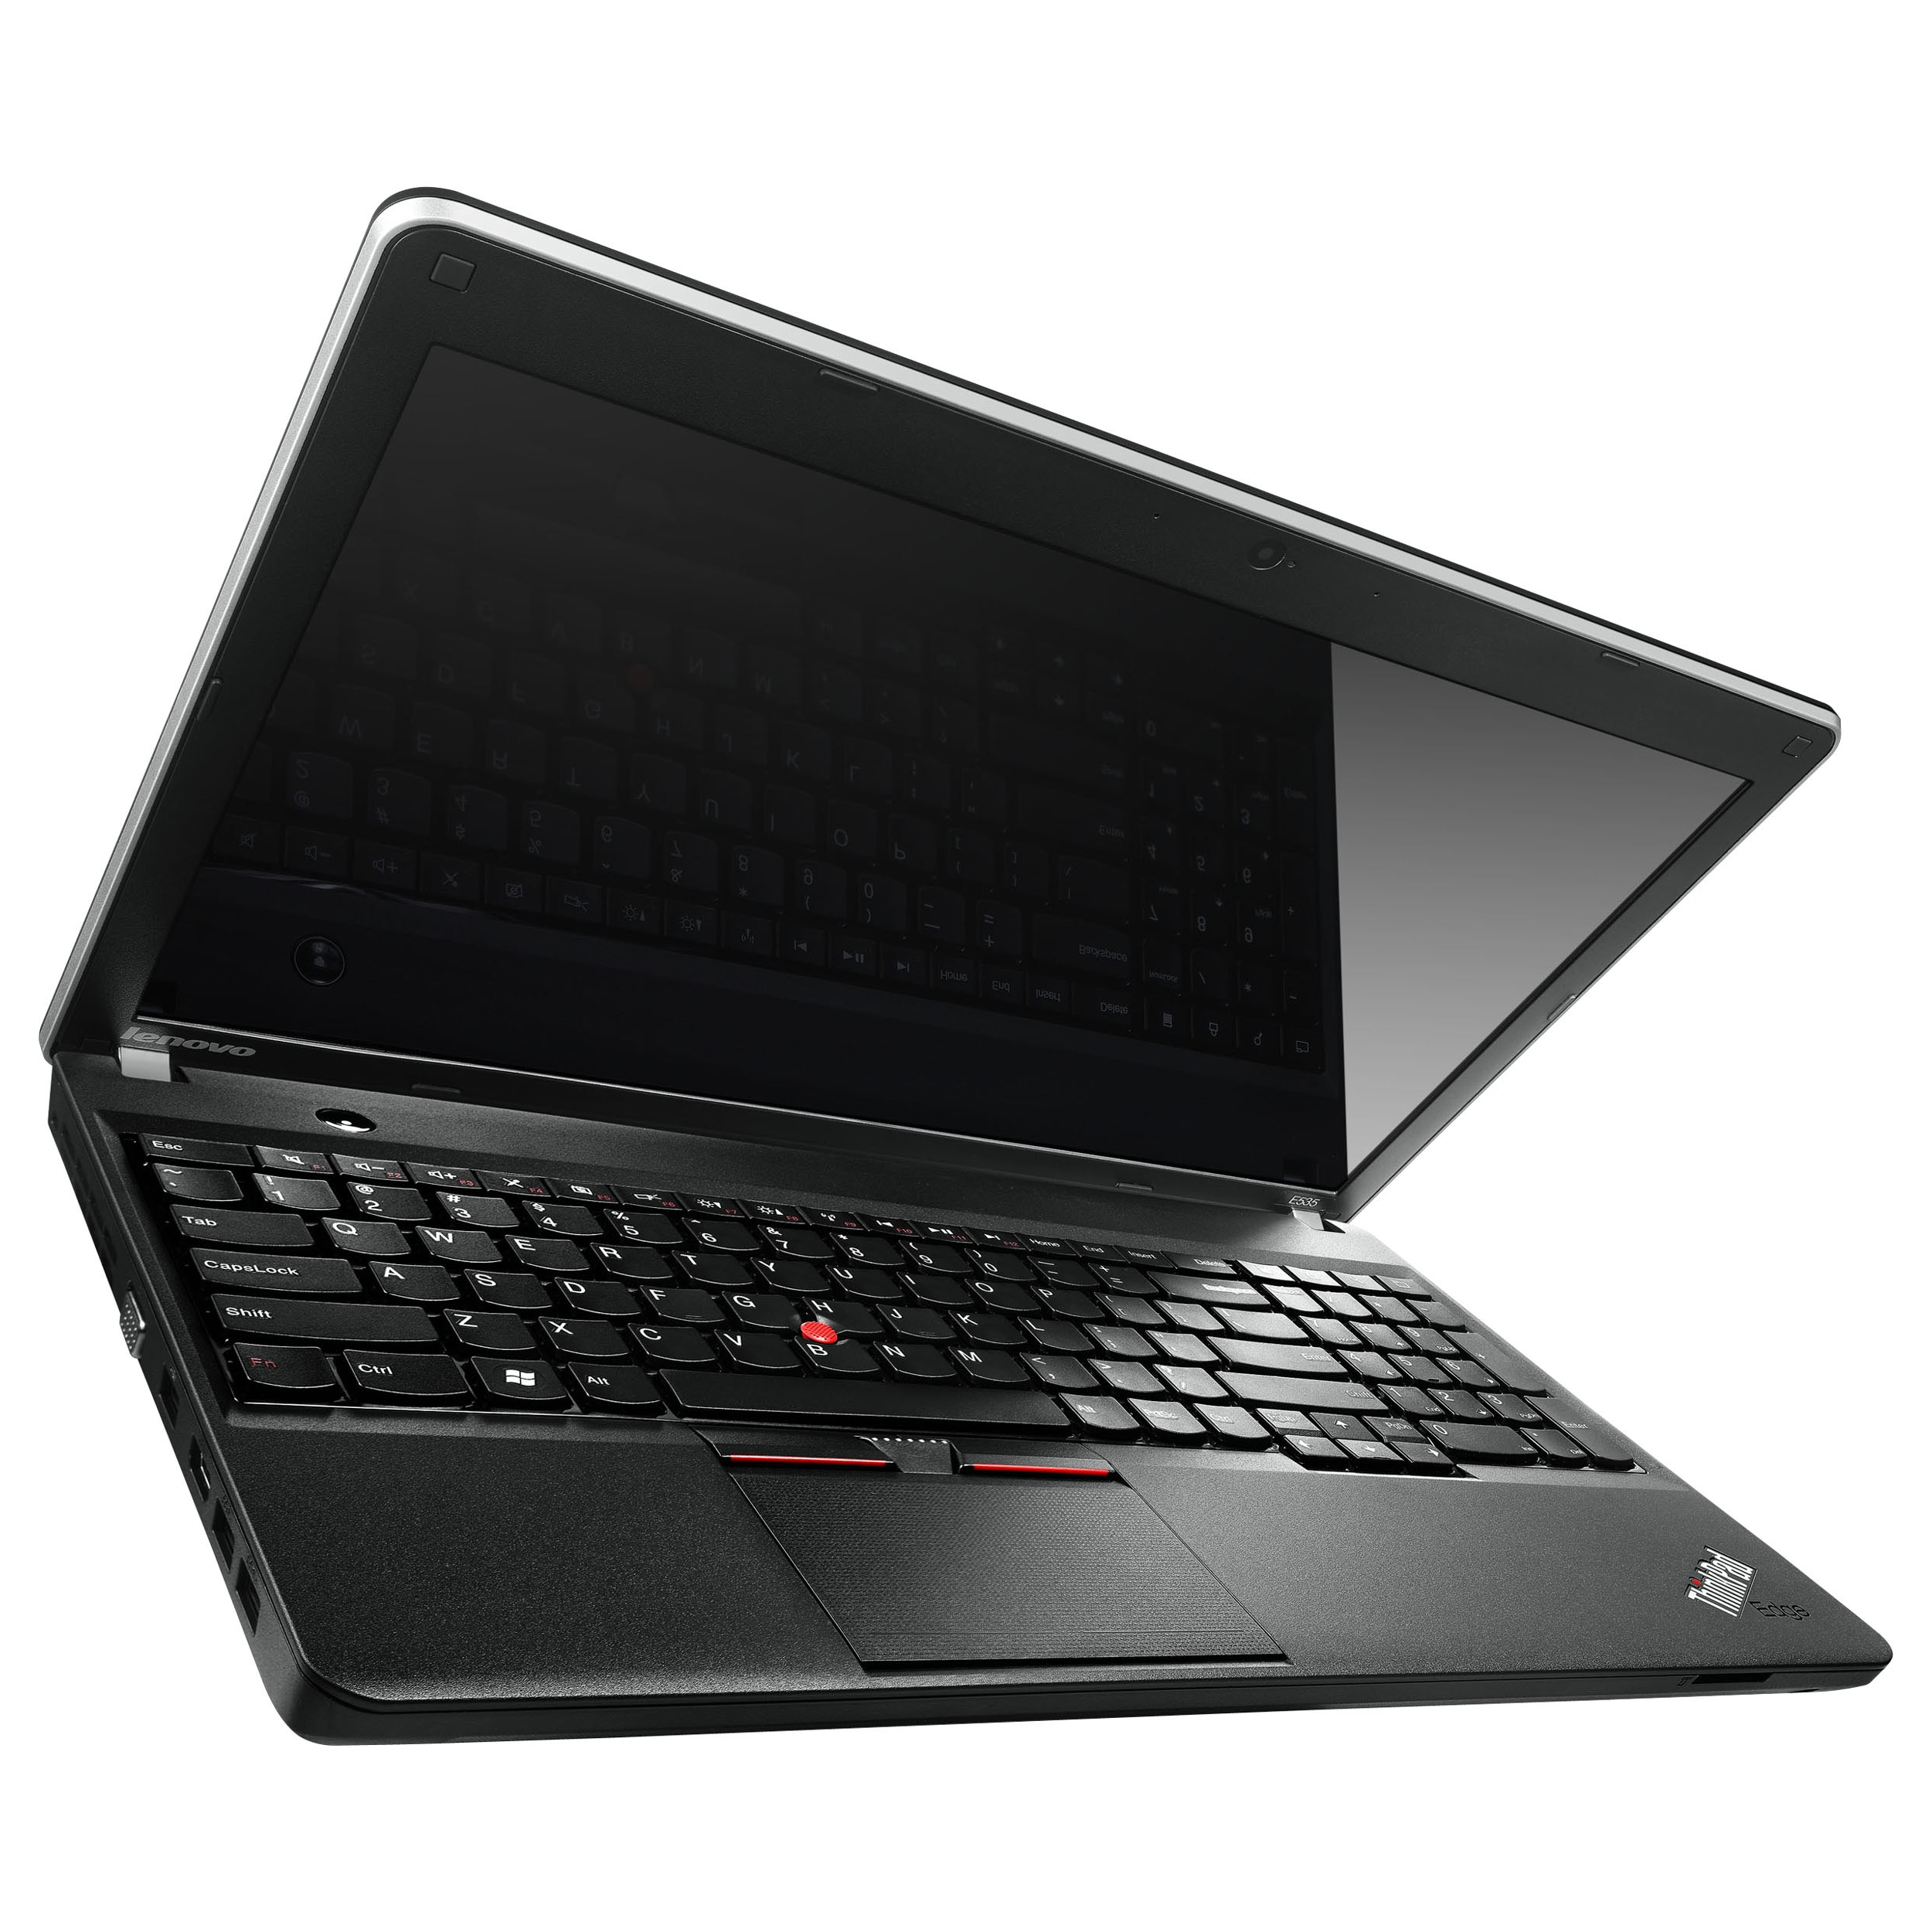 Lenovo ThinkPad Edge E535 AMD USB 3.0 Controller Driver Windows